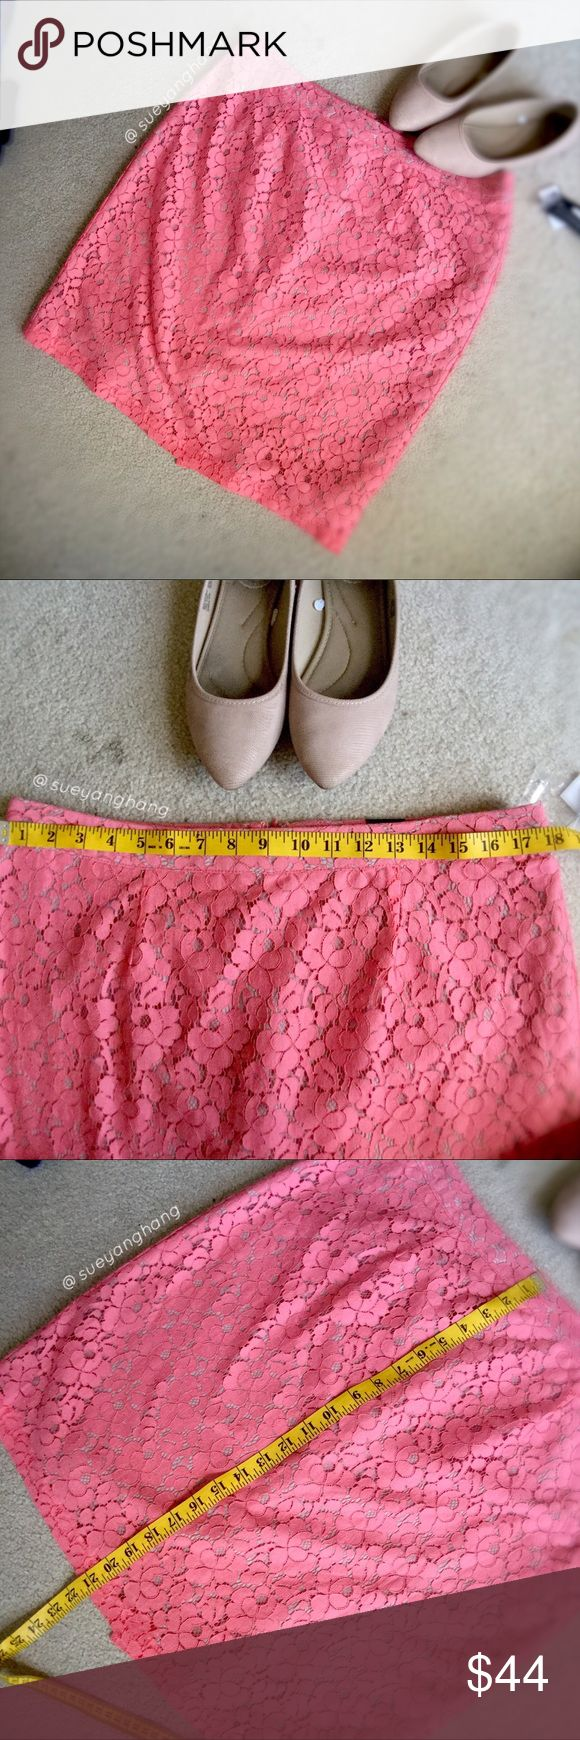 APARTMENT 9 Coral Pencil Skirt BRAND NEW WITH PRICE TAGS STILL ATTACHED!  This is adorable and perfect for an everyday look. Apt. 9 Skirts Pencil